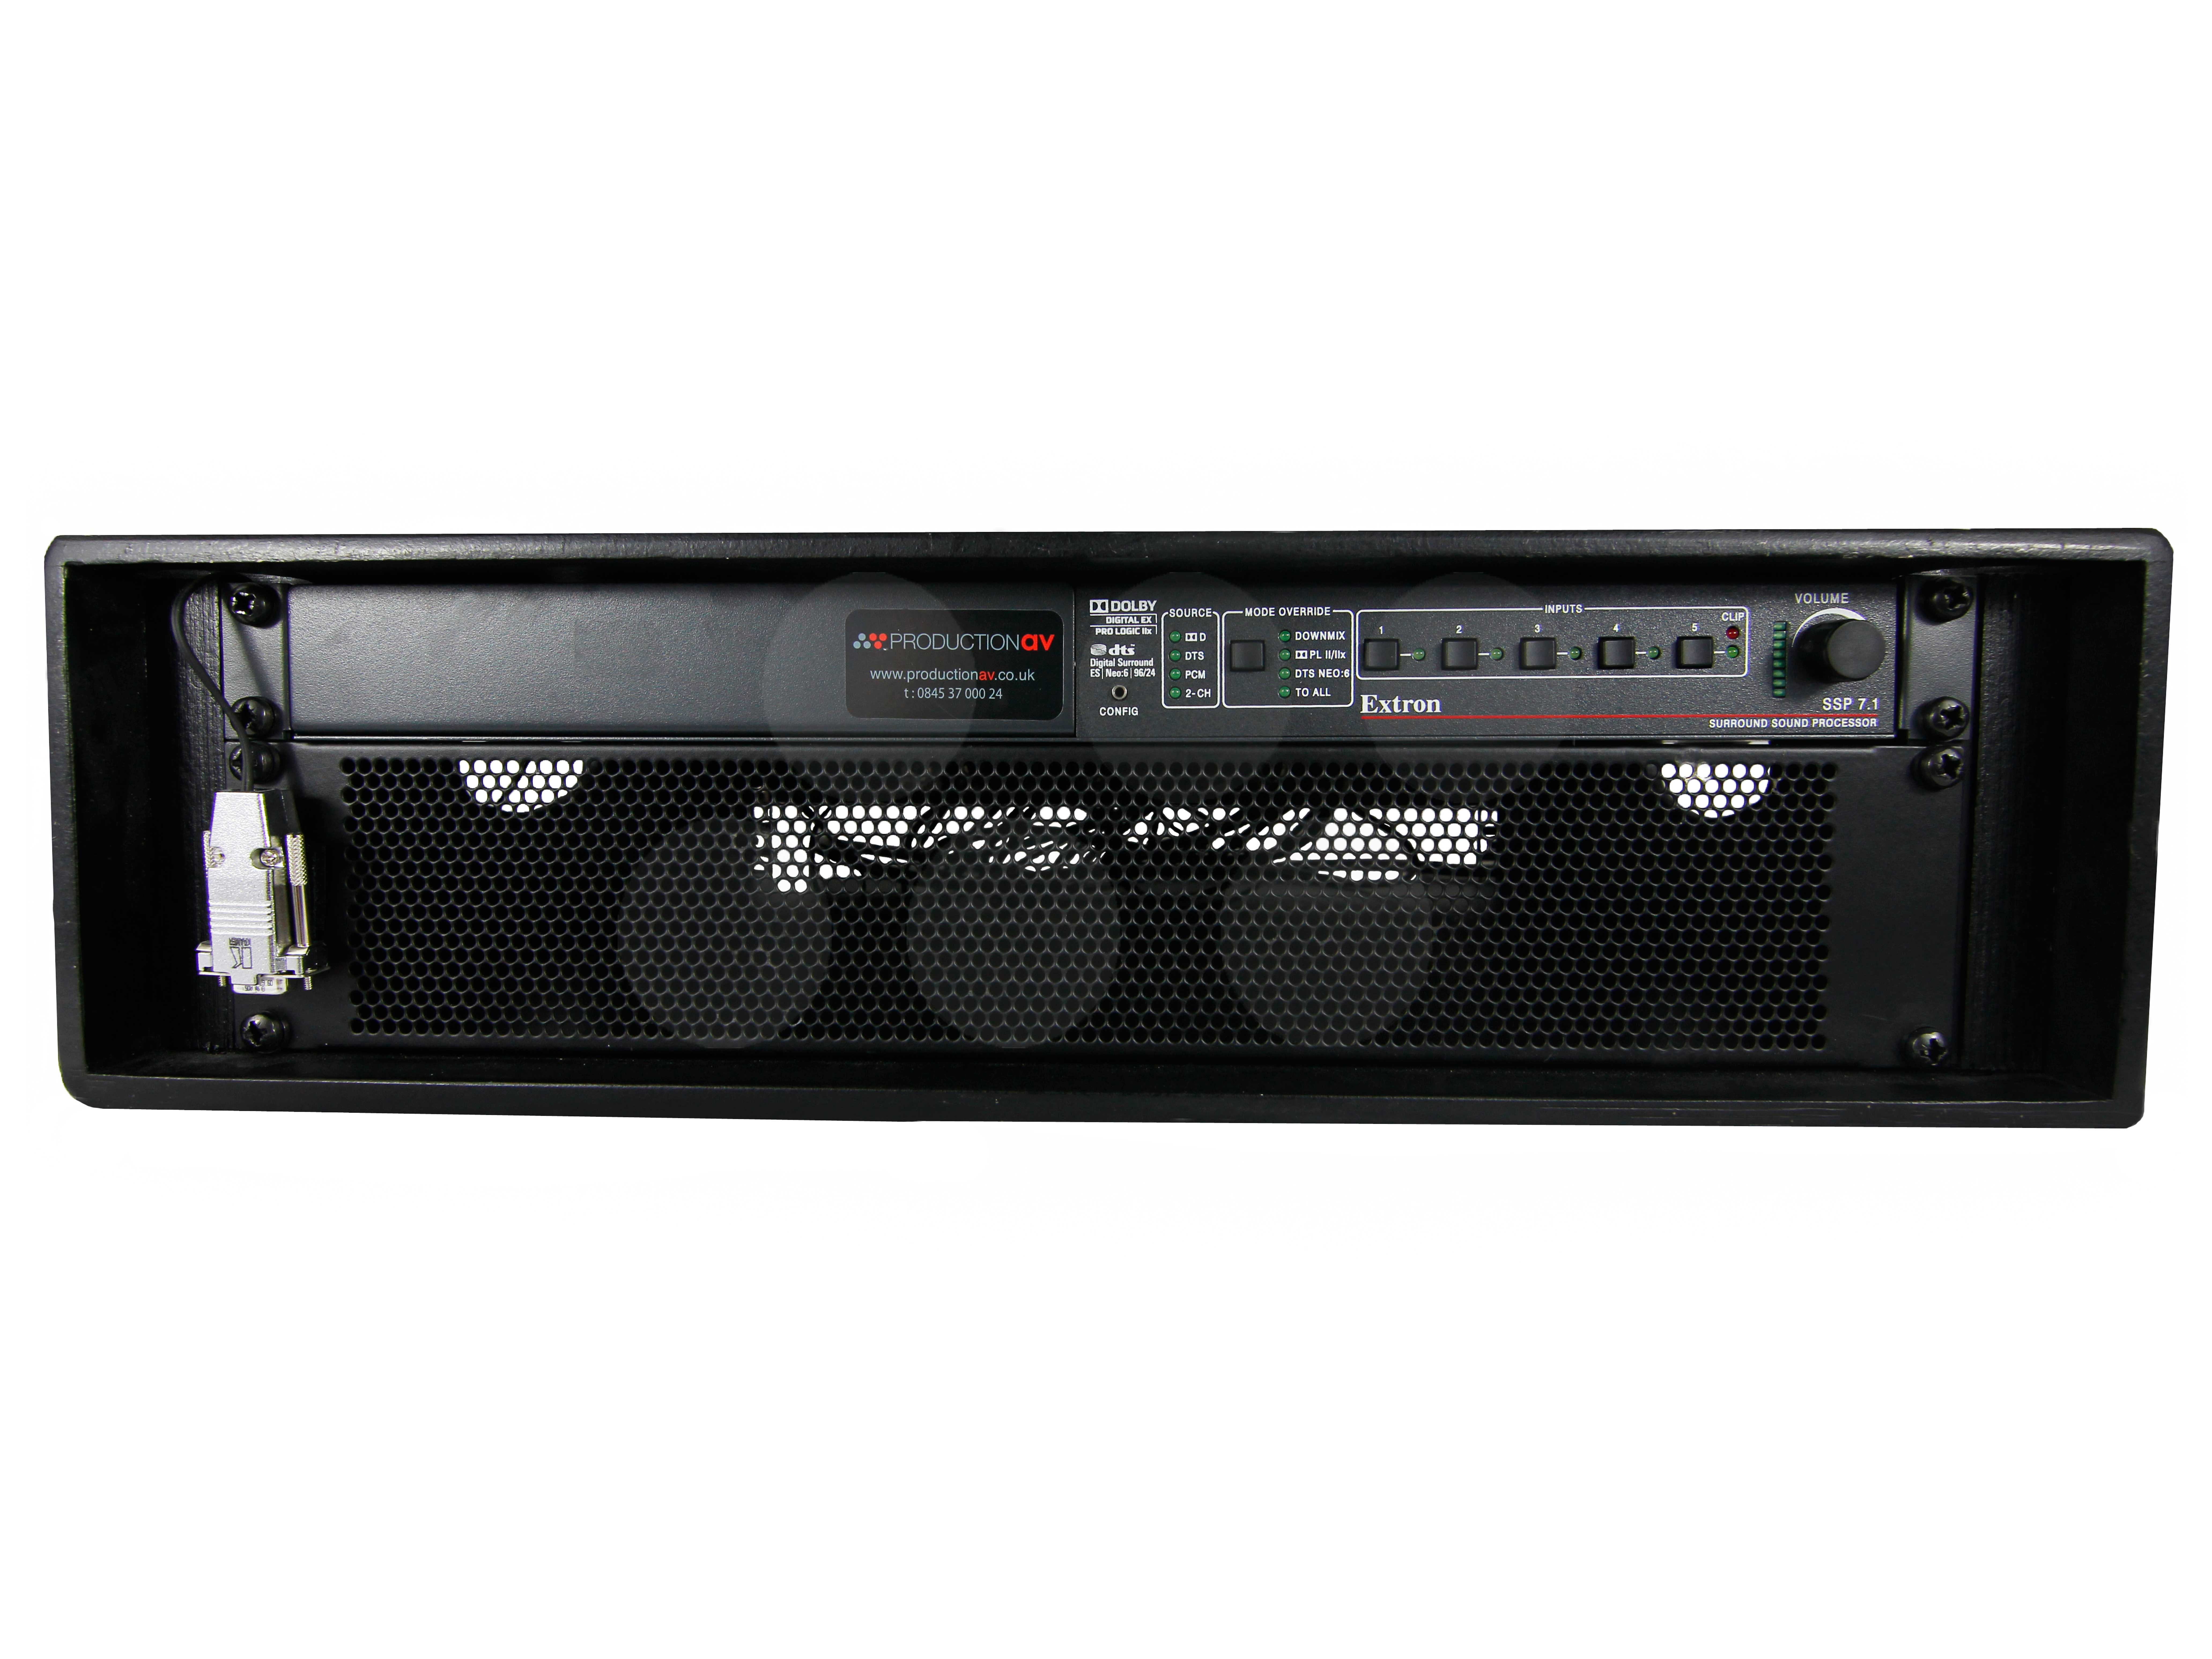 Extron SSP7.1 Surround Sound Processor